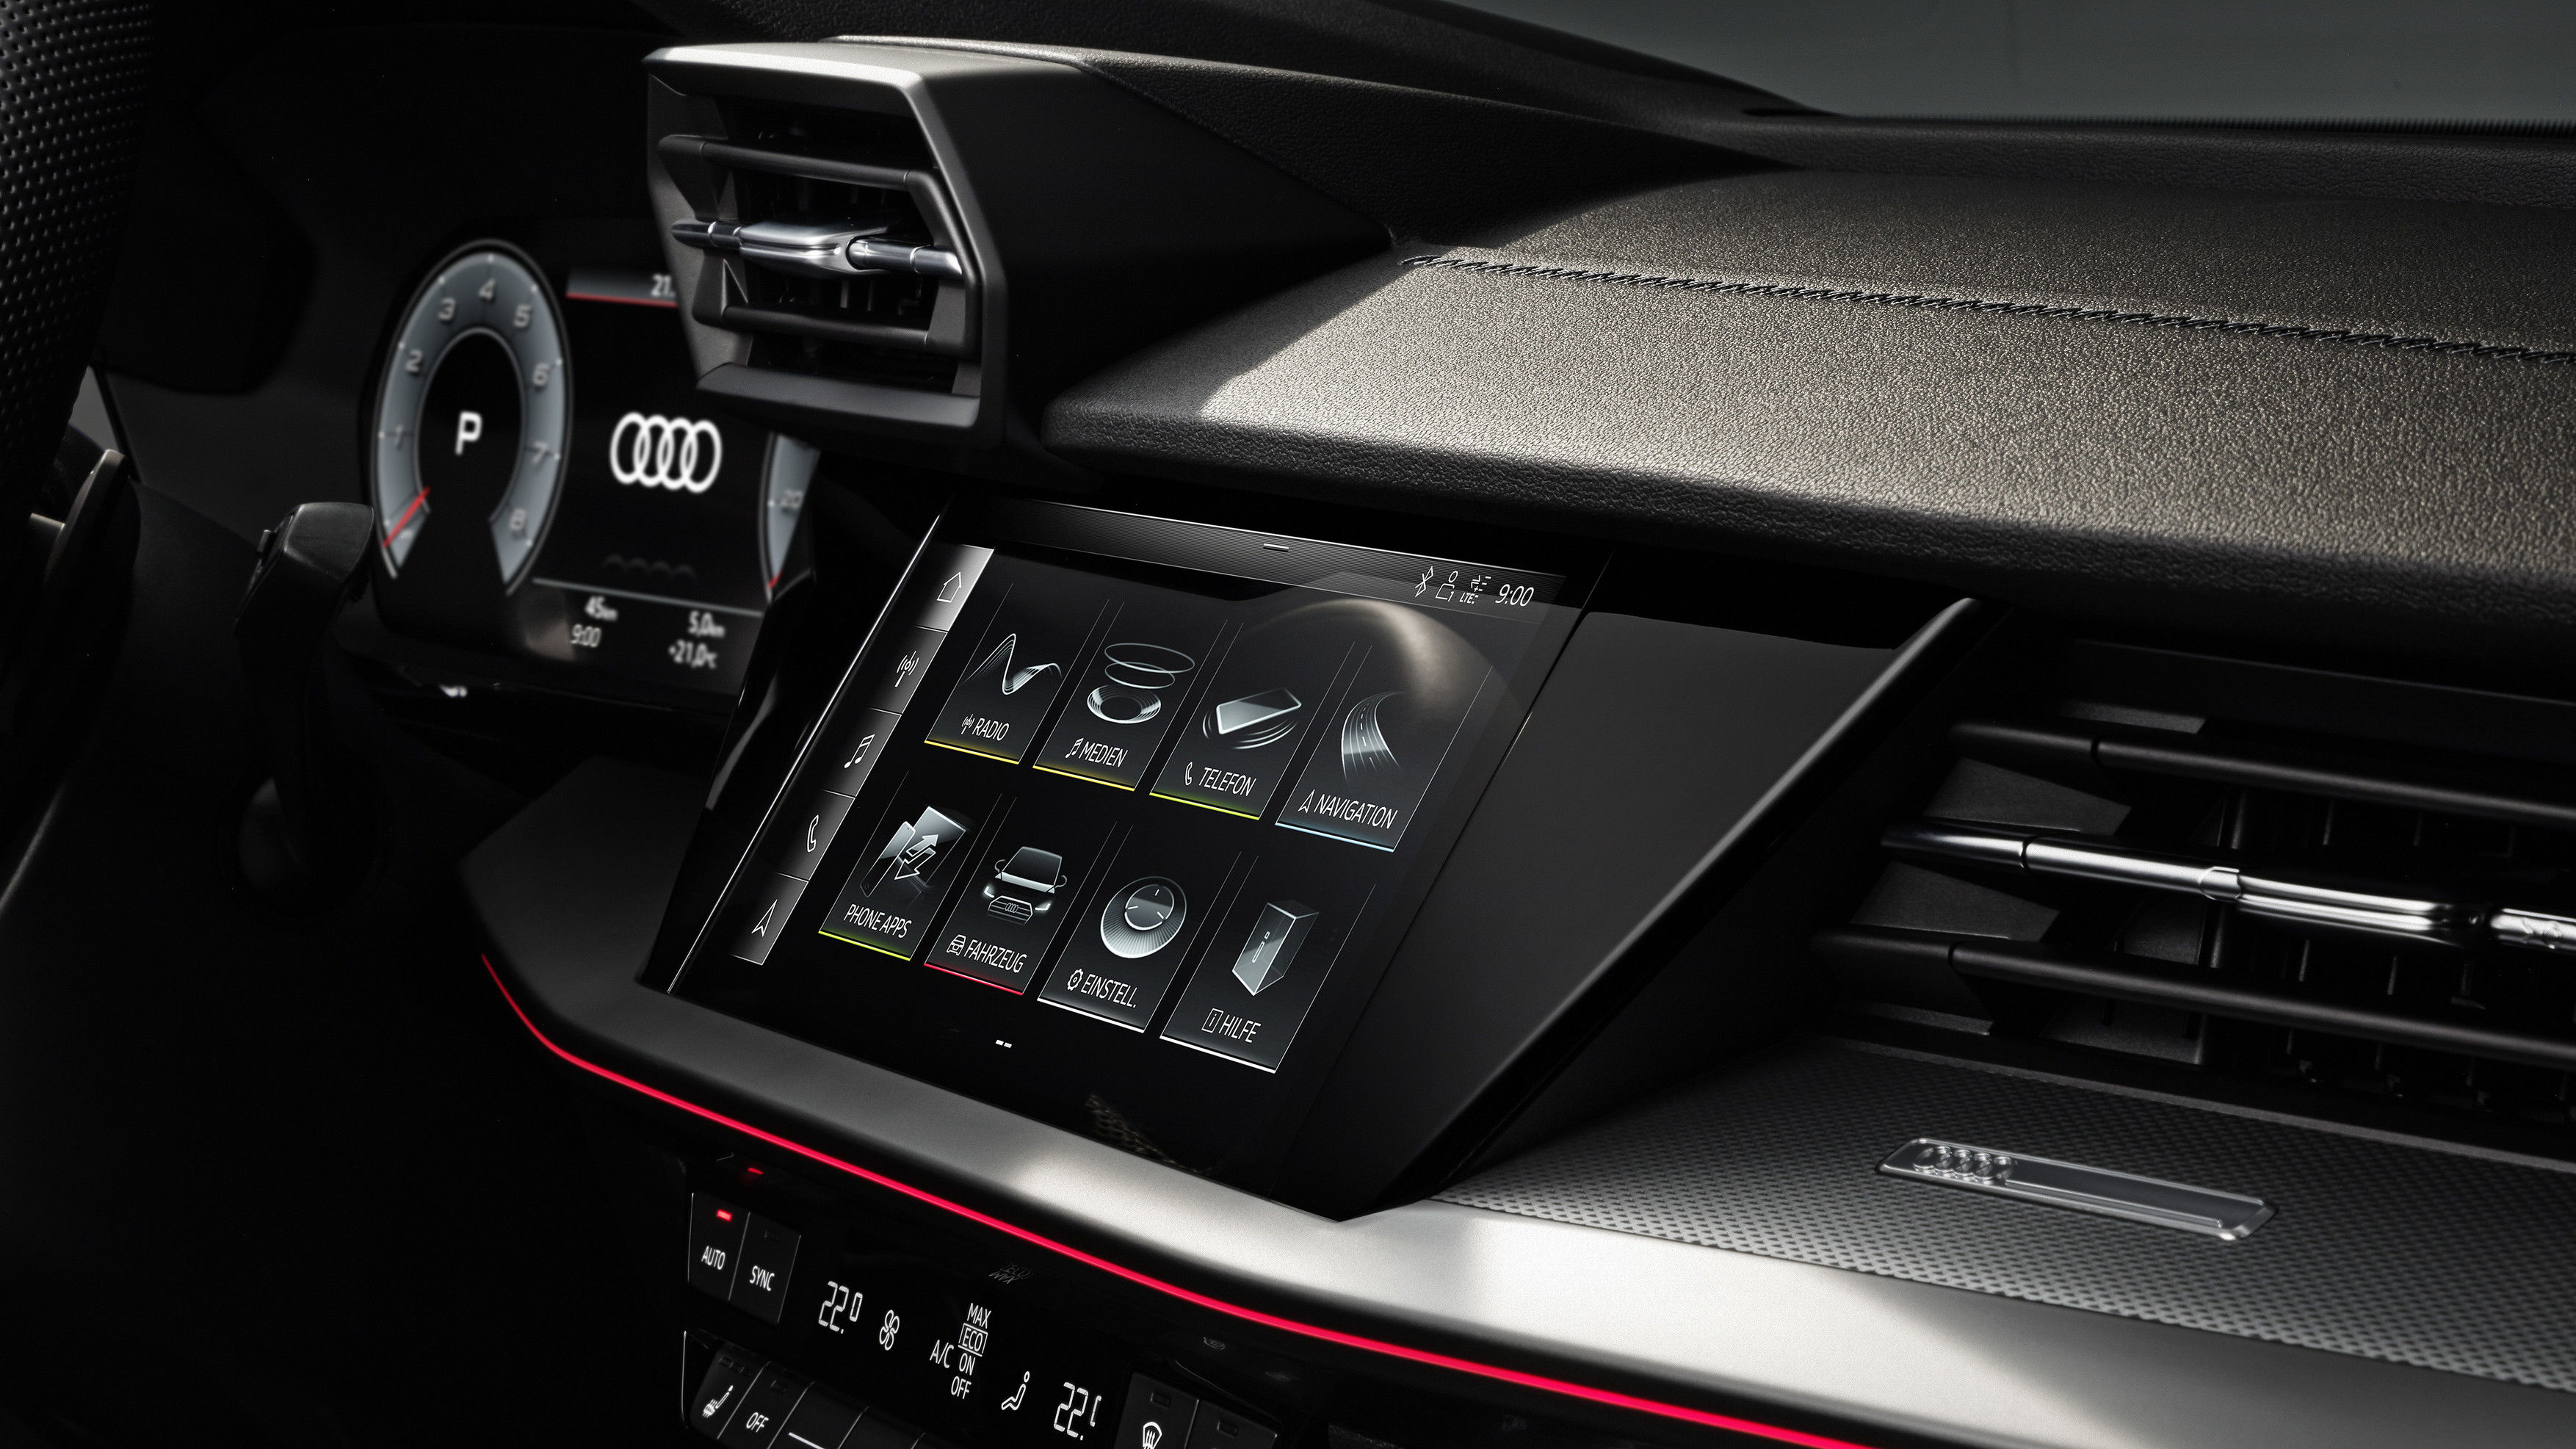 The A3 Sedan is also connected to the smartphone via the Audi smartphone interface, which integrates iOS and Android cell phones with Apple Car Play and Android Auto in the MMI, as well as via Audi phone box. The latter connects the device to the car antenna and can charge it inductively.